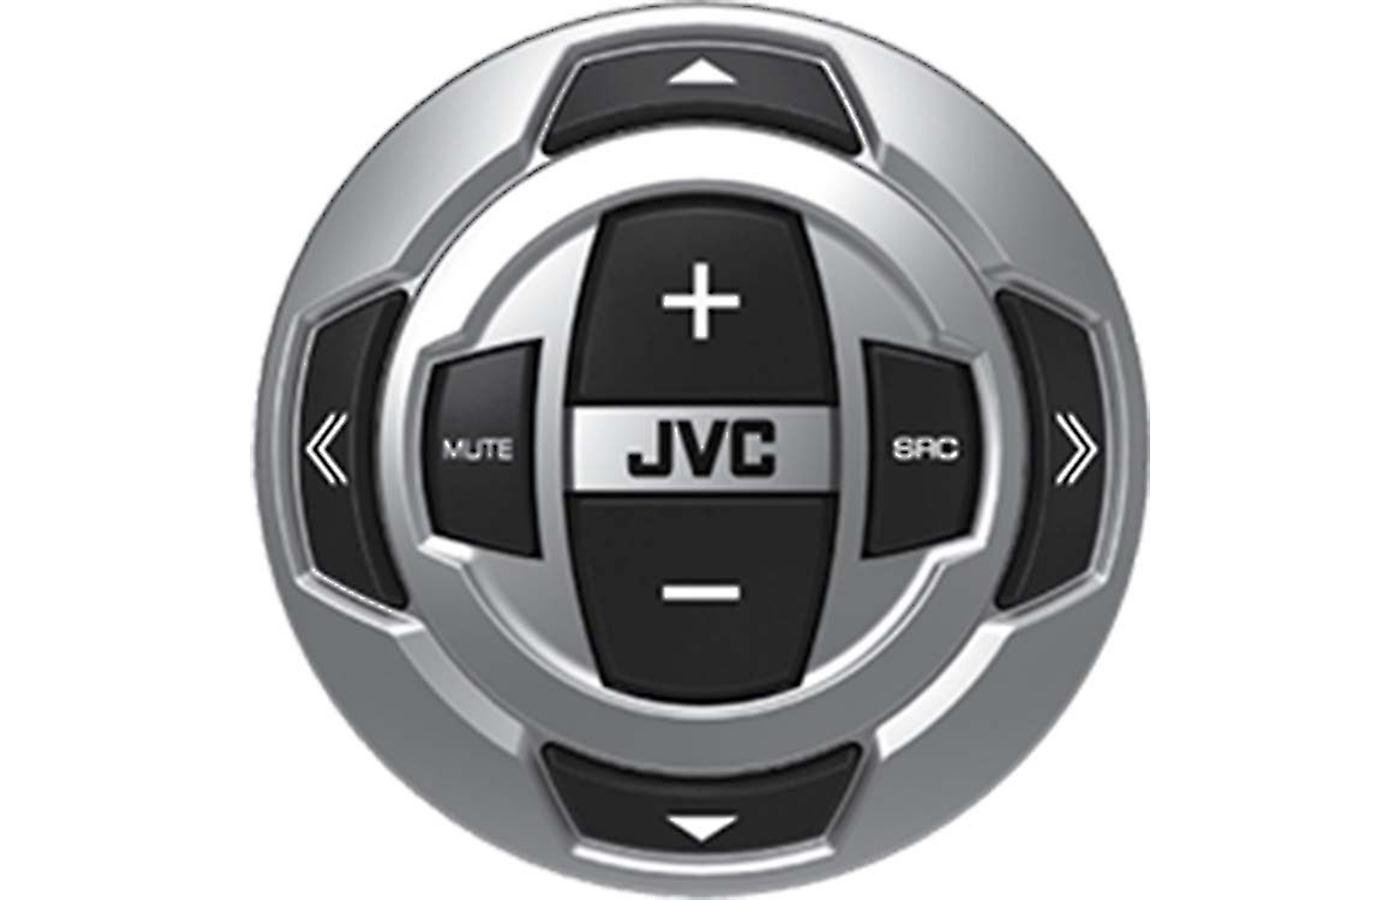 JVC RM-RK62M Wired marine remote control by JVC